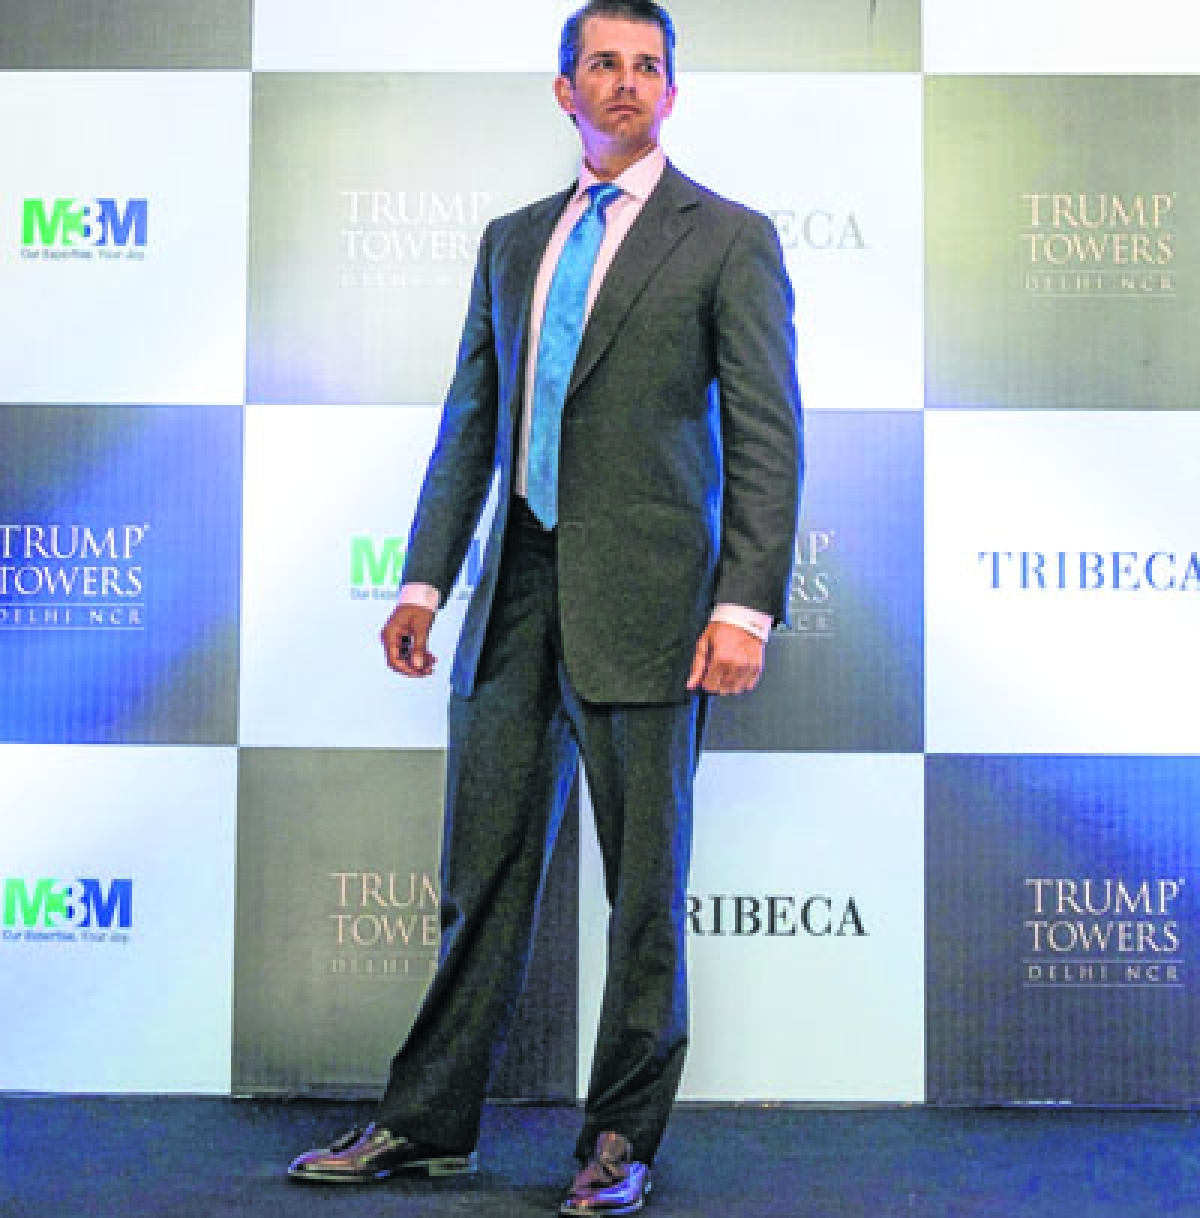 US businessman Donald Trump junior, son of the US President Donald Trump, poses before a business meeting in New Delhi on February 20, 2018.  Dozens of property investors and their families will be treated to dinner with Donald Trump junior in New Delhi this week after snapping up flats in a Trump Towers luxury development on the outskirts of the Indian capital.  / AFP PHOTO / CHANDAN KHANNA